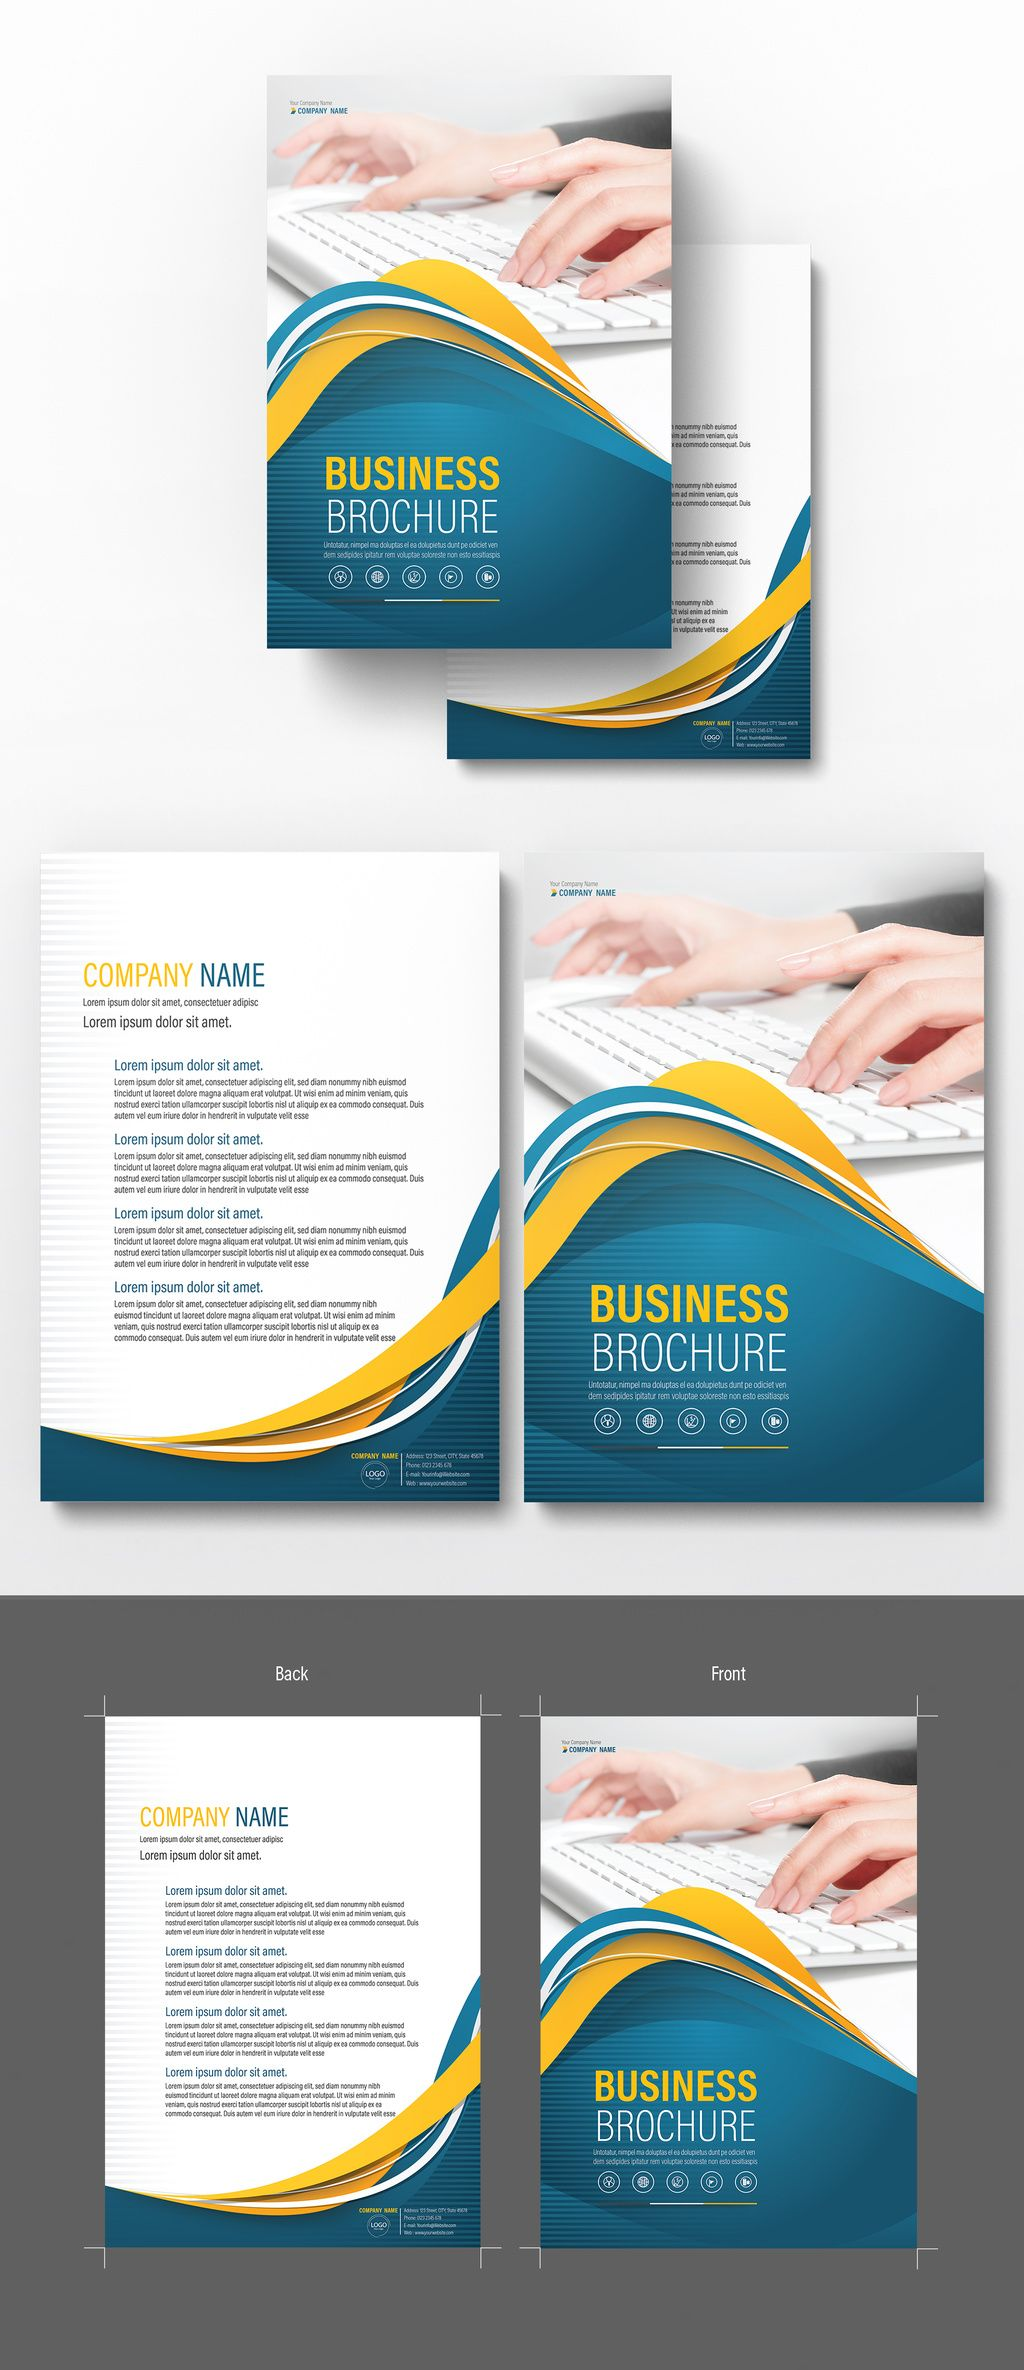 Brochure Cover Layout With Blue And Yellow Accents 5 Image Adobe